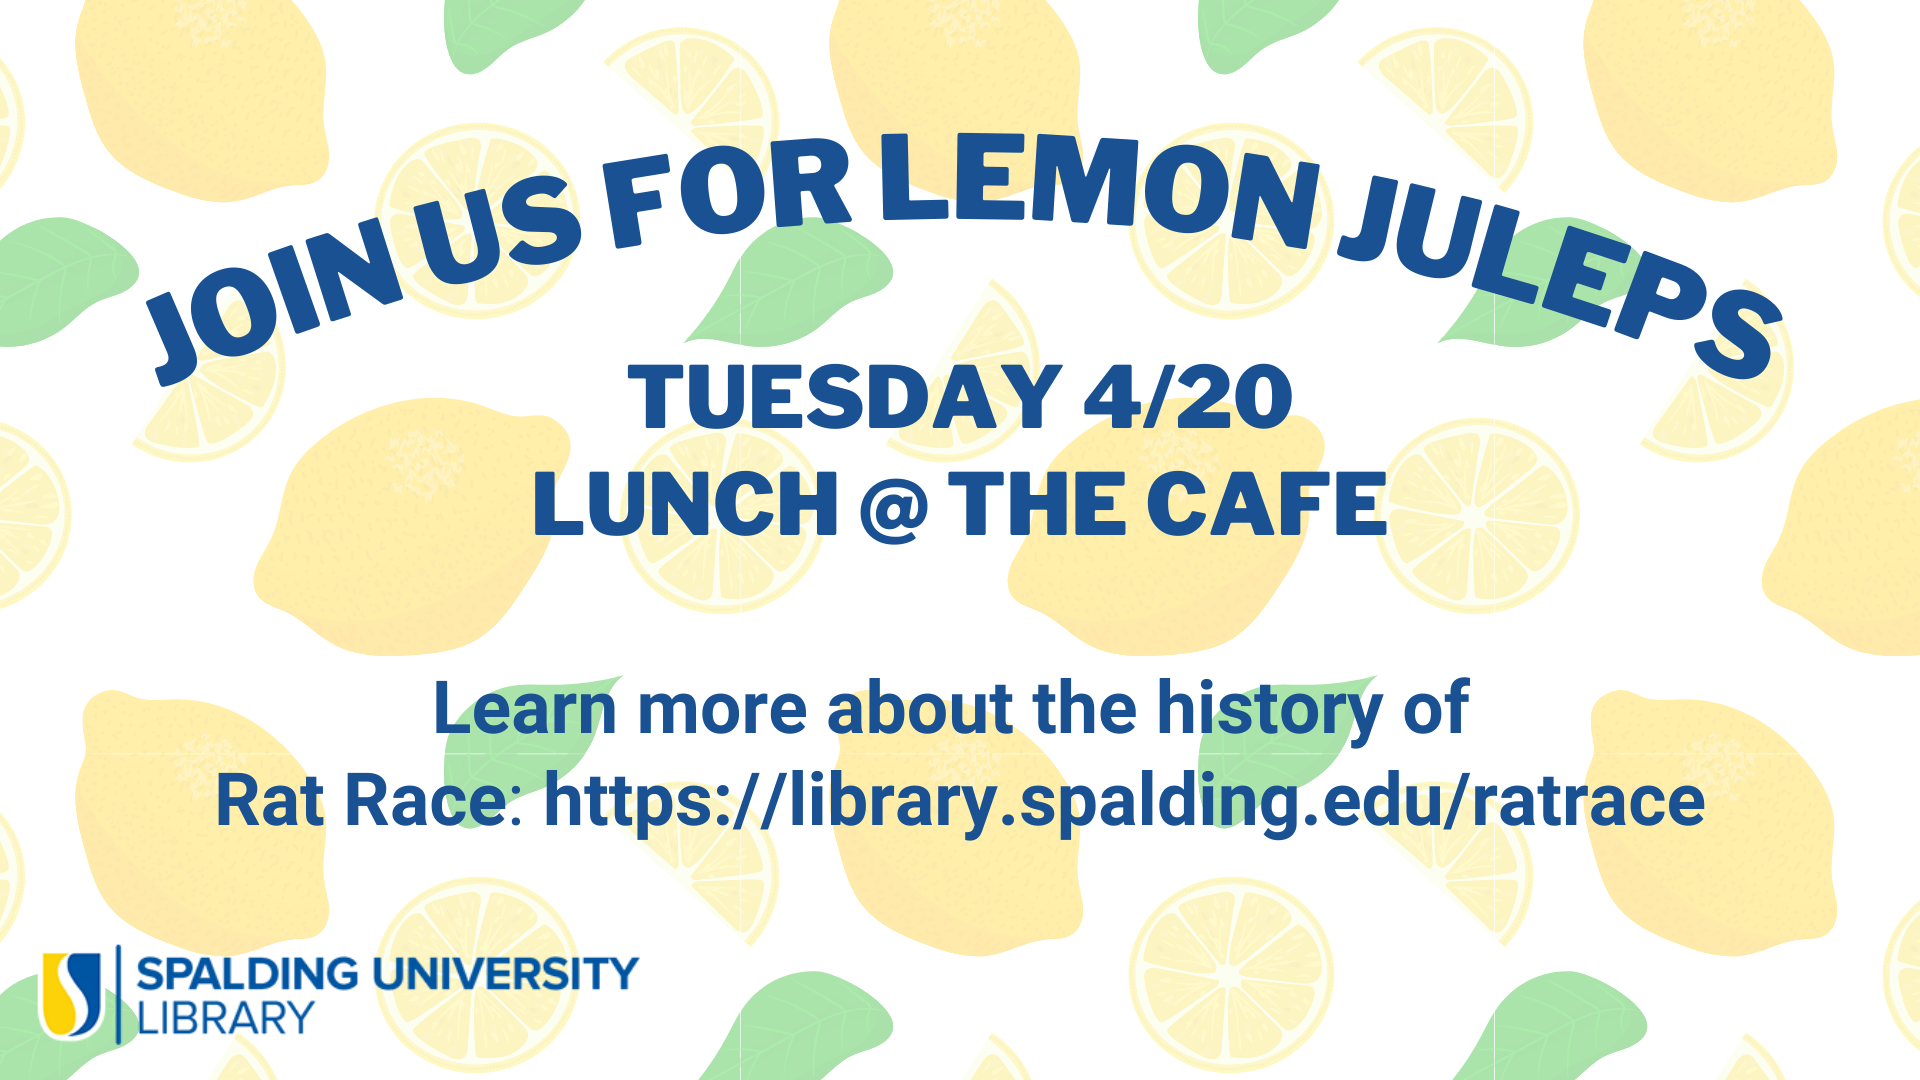 Join us for Lemon Juleps: Tuesday 4/20 at Lunch in the Cafe. Learn more about the history of Rat Race: https://library.spalding.edu/ratrace